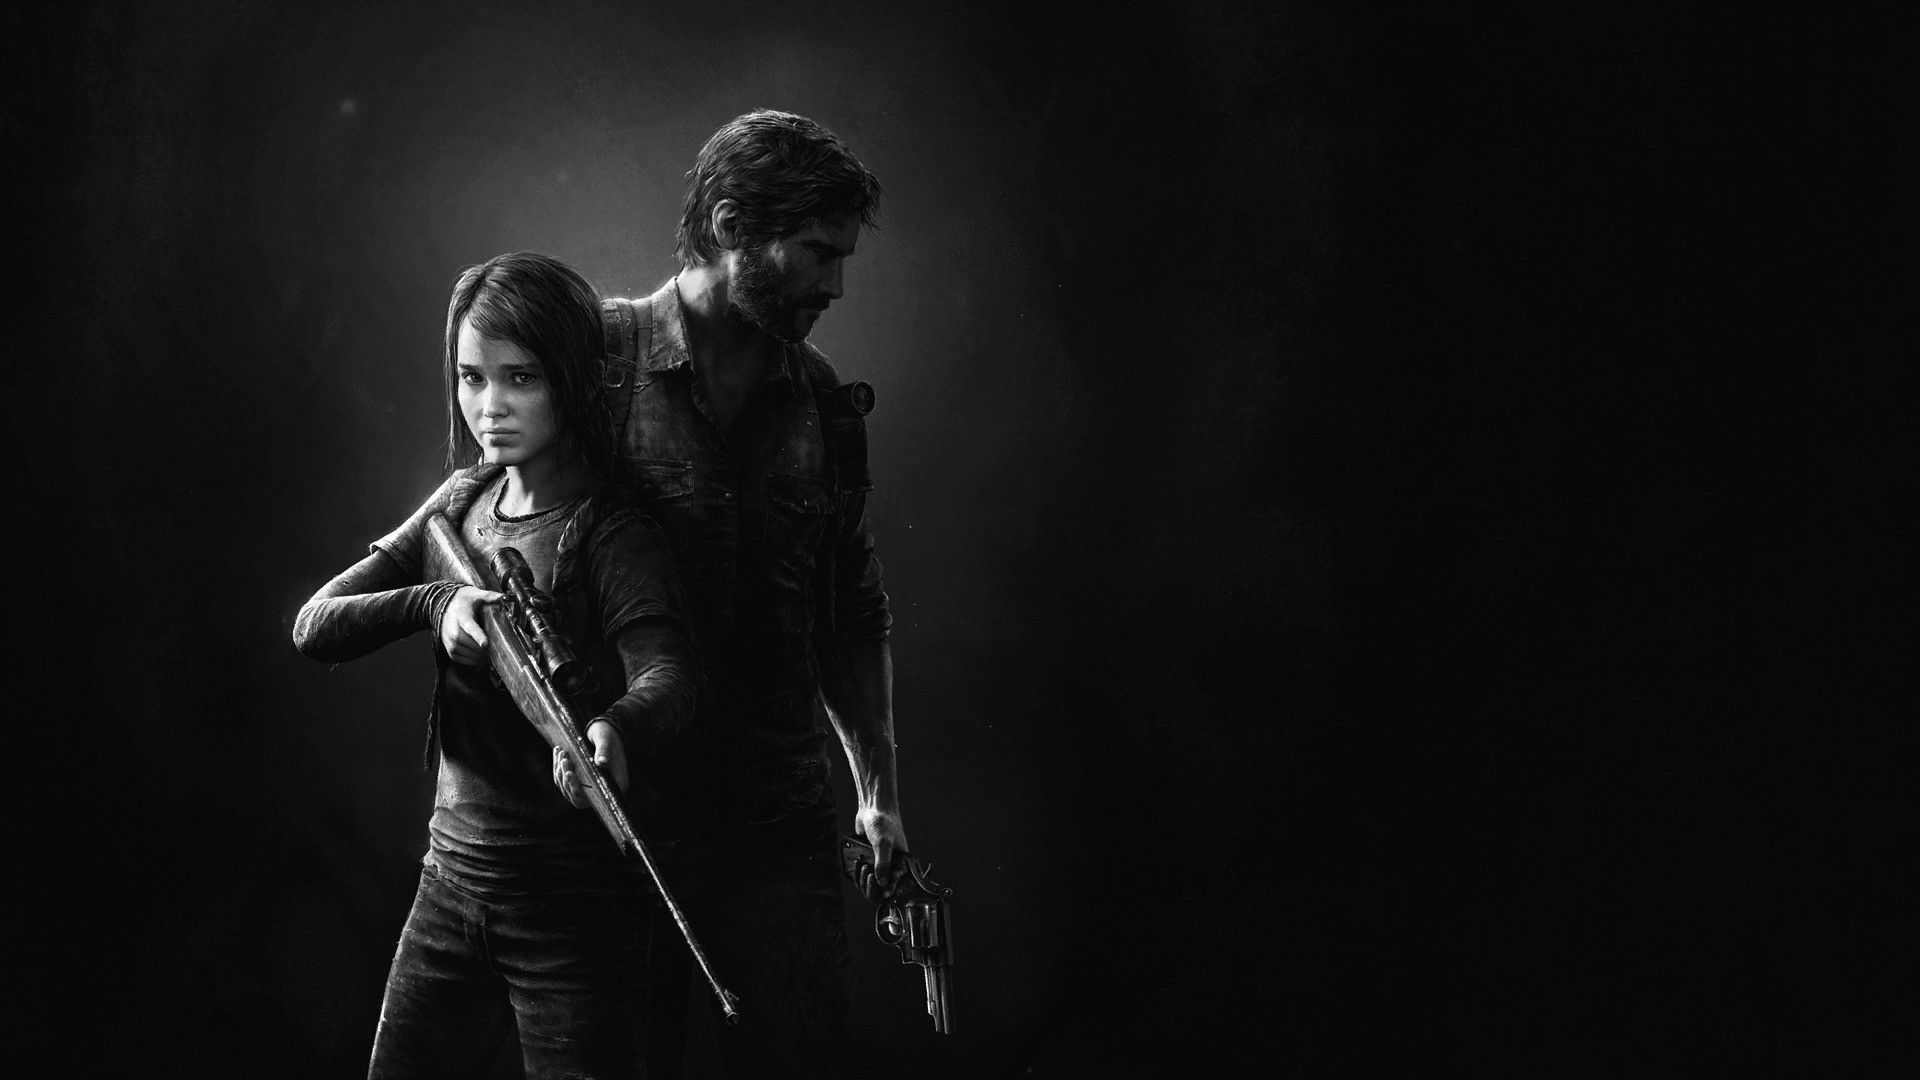 iPhone sc wallpaper The Last of Us The last of us Fondos de 1920x1080